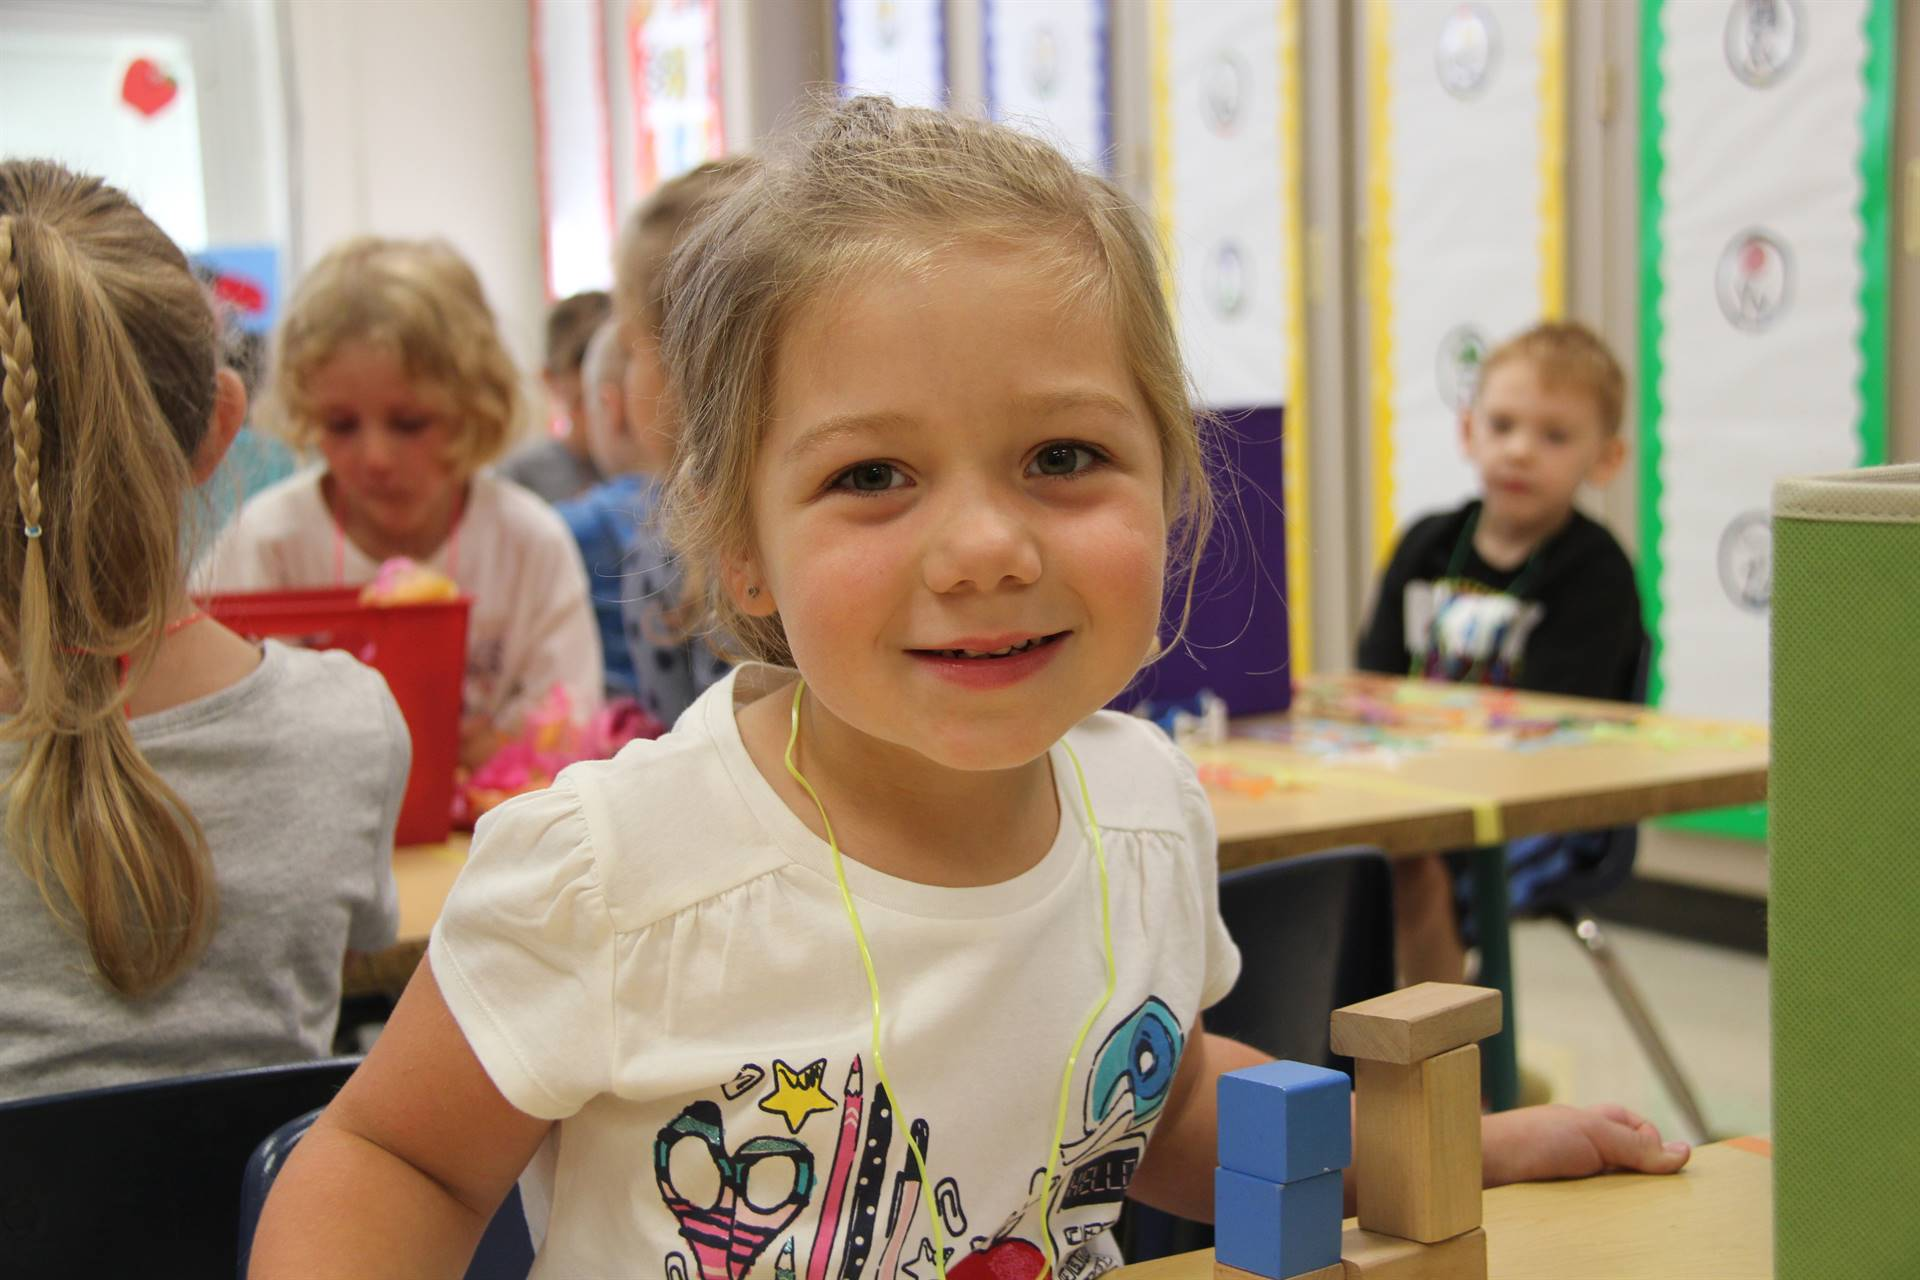 girl smiles sitting in classroom on first day of school